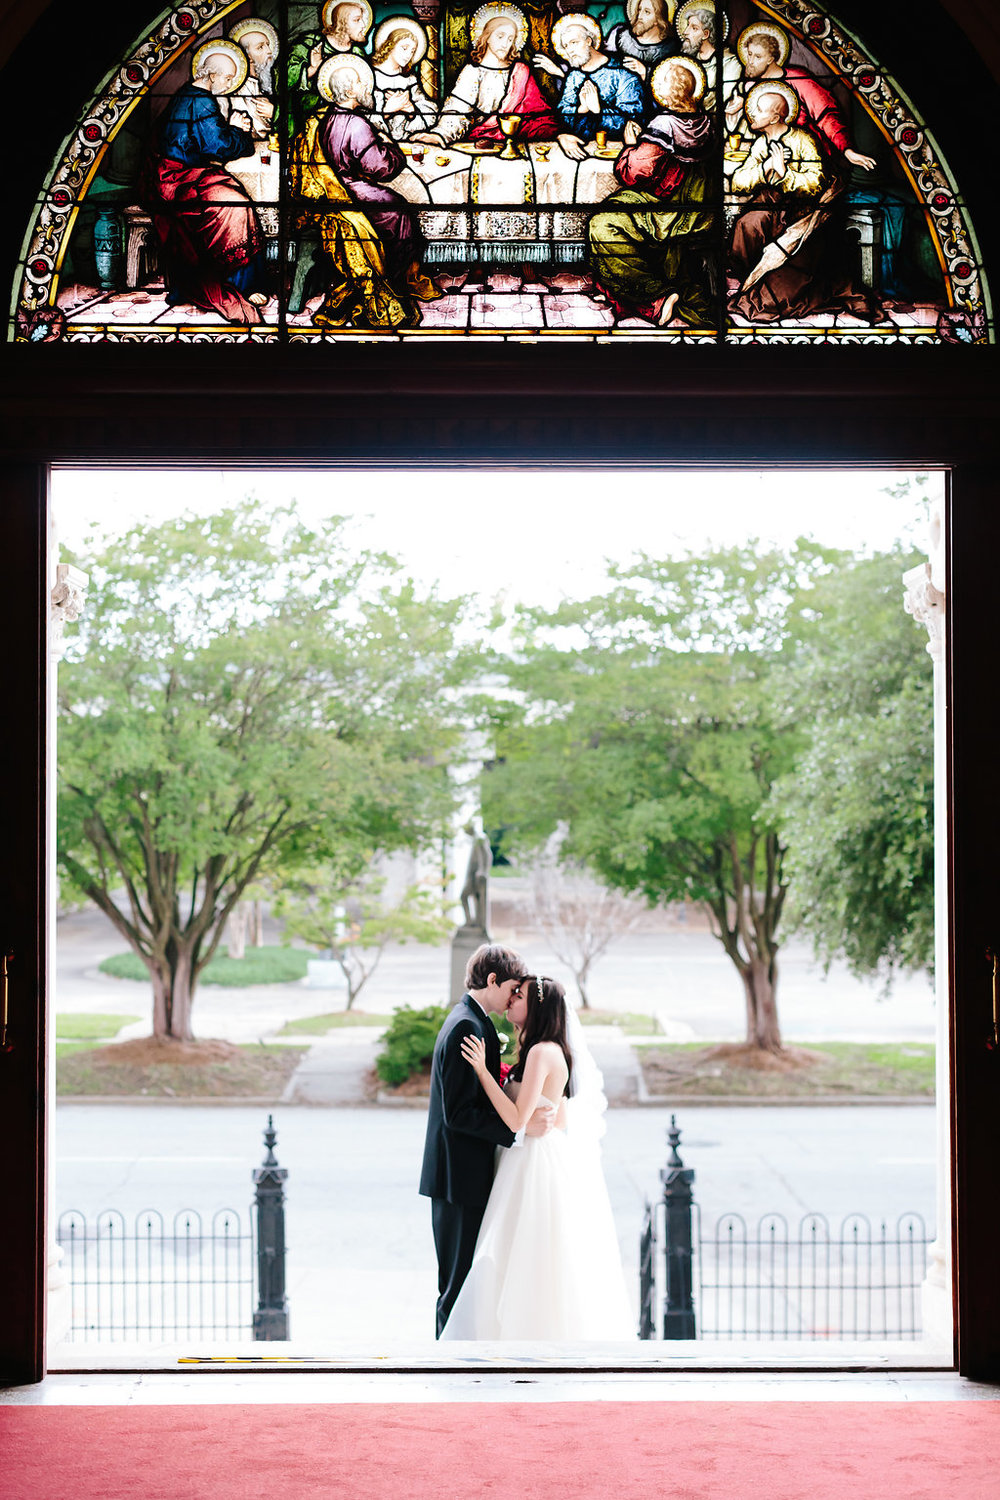 Sacred Heart wedding photography